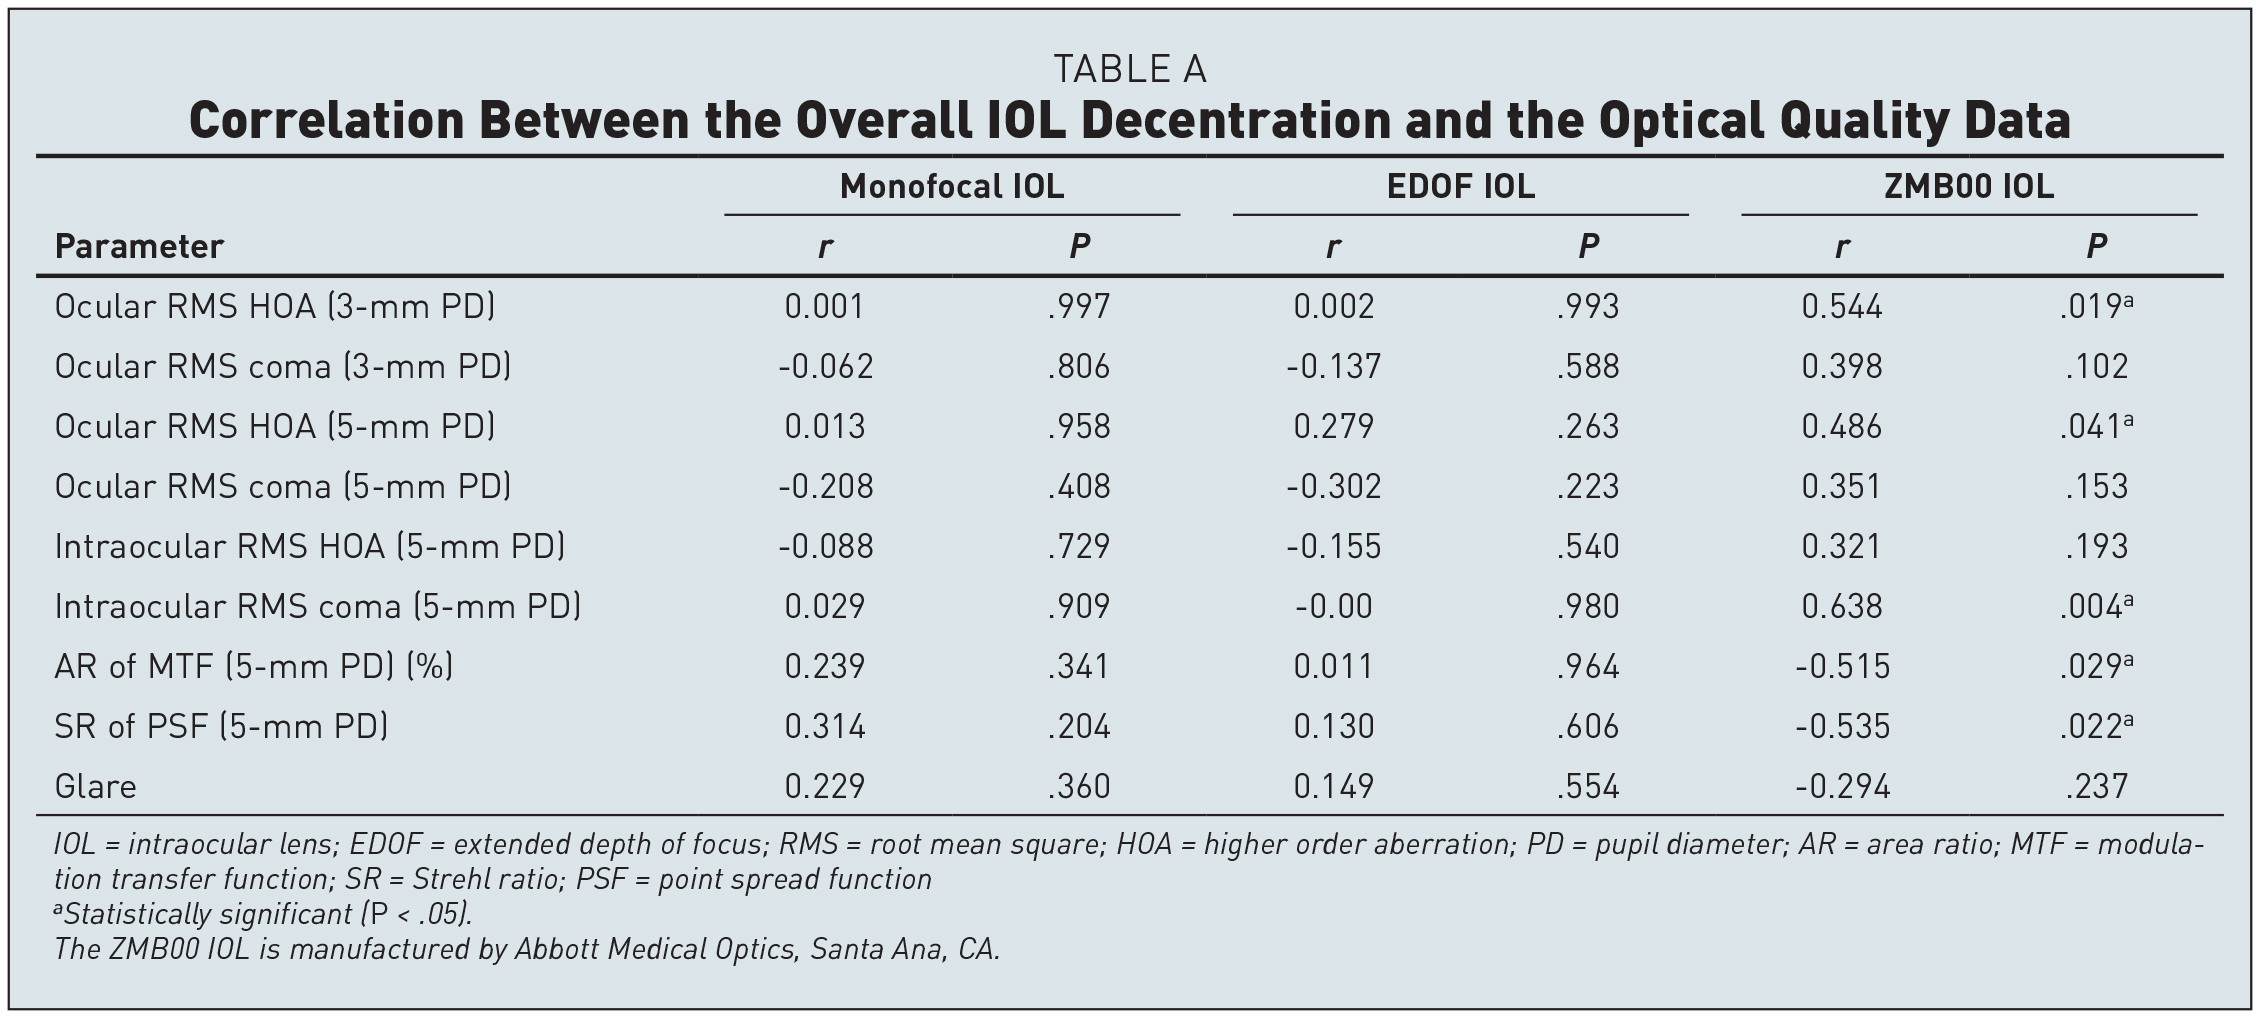 Correlation Between the Overall IOL Decentration and the Optical Quality Data